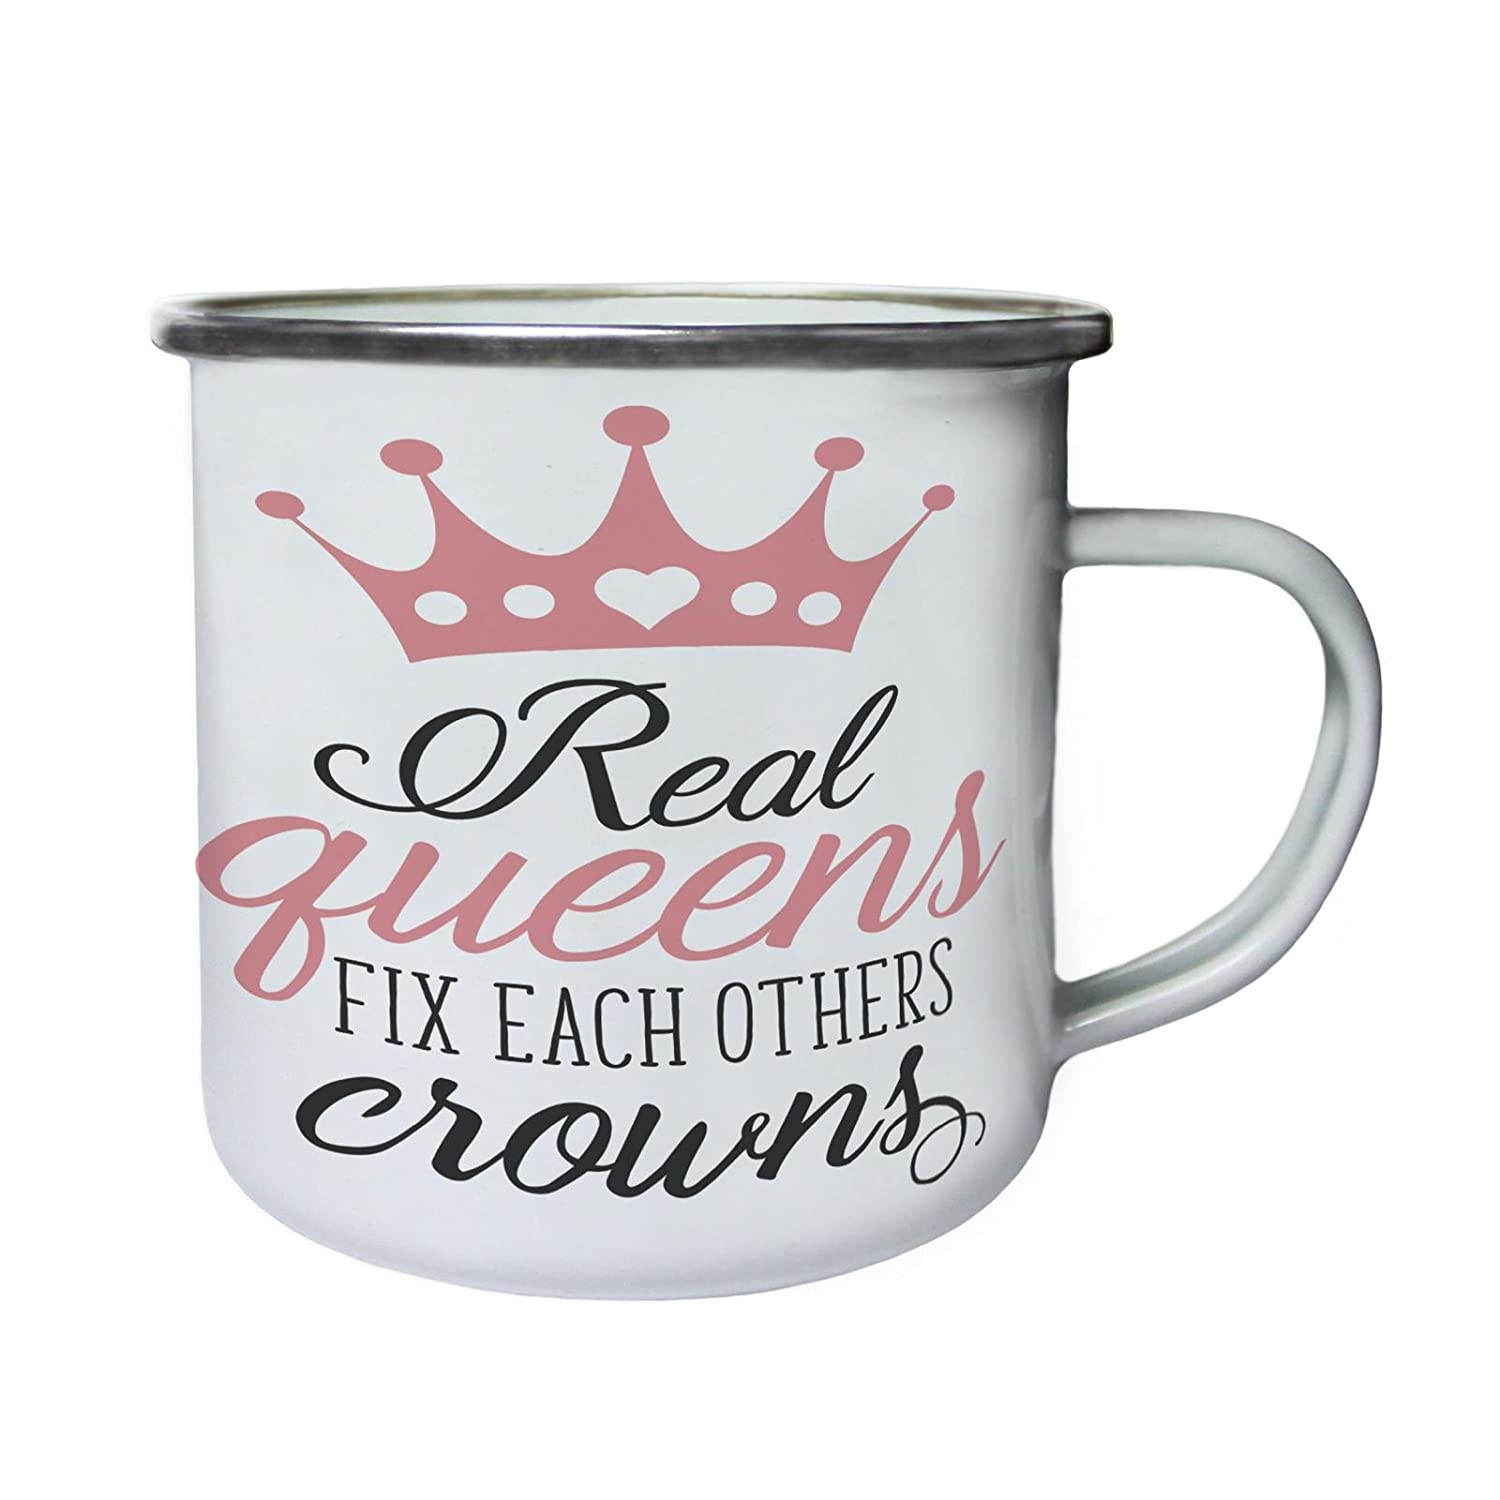 Real Queens Fix各Others Crownsレトロ、Tin、エナメル10ozマグn758e B0749D8CD3